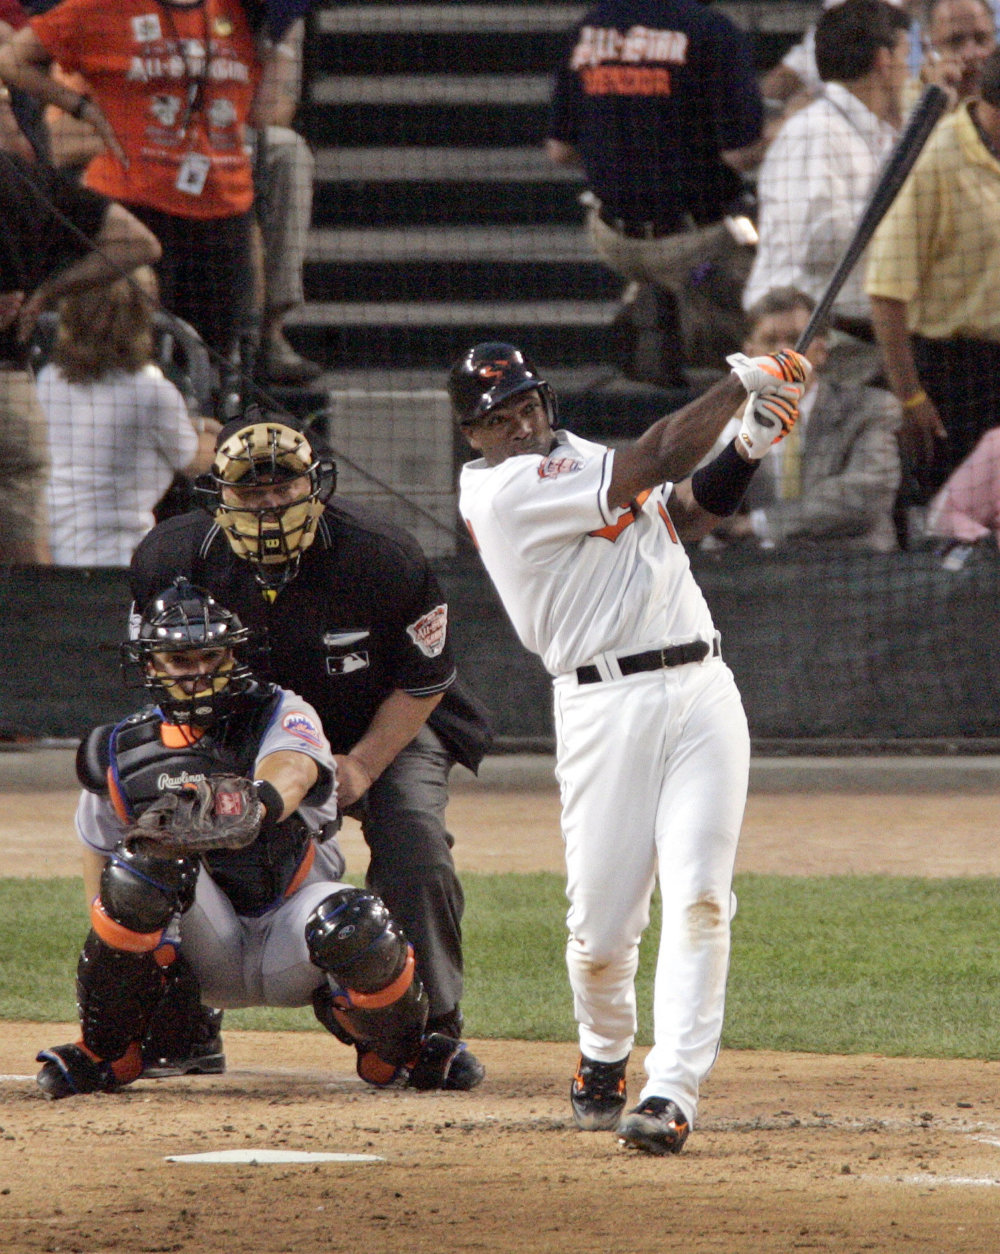 American League All-Star Miguel Tejada of the Baltimore Orioles follows through on his second inning home run off National League All-Star pitcher John Smoltz of the Atlanta Braves in the second inning of the 2005 MLB All-Star Game, at Comerica Park in Detroit, Tuesday, July 12, 2005. In the background are catcher Paul Lo Duca of the Florida Marlins and umpire Joe West.  (AP Photo/Charlie Neibergall)